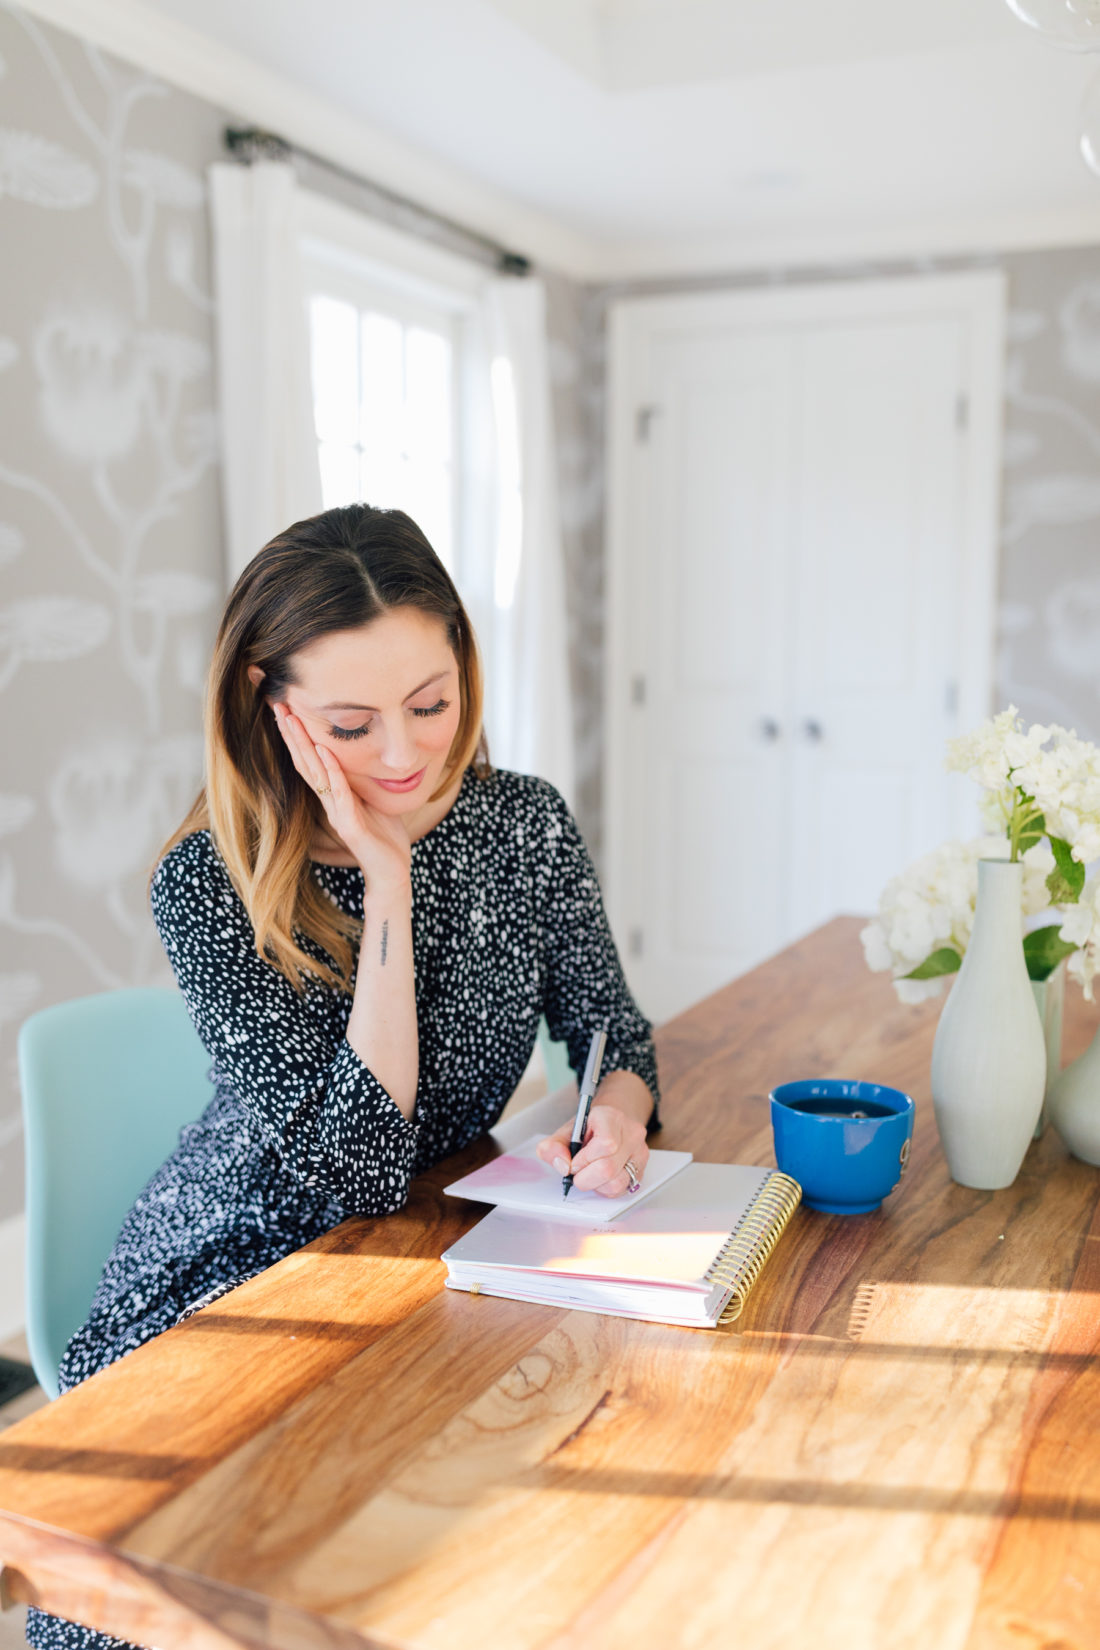 Eva Amurri Martino sits at her dining room table and writes down her intentions for the new year